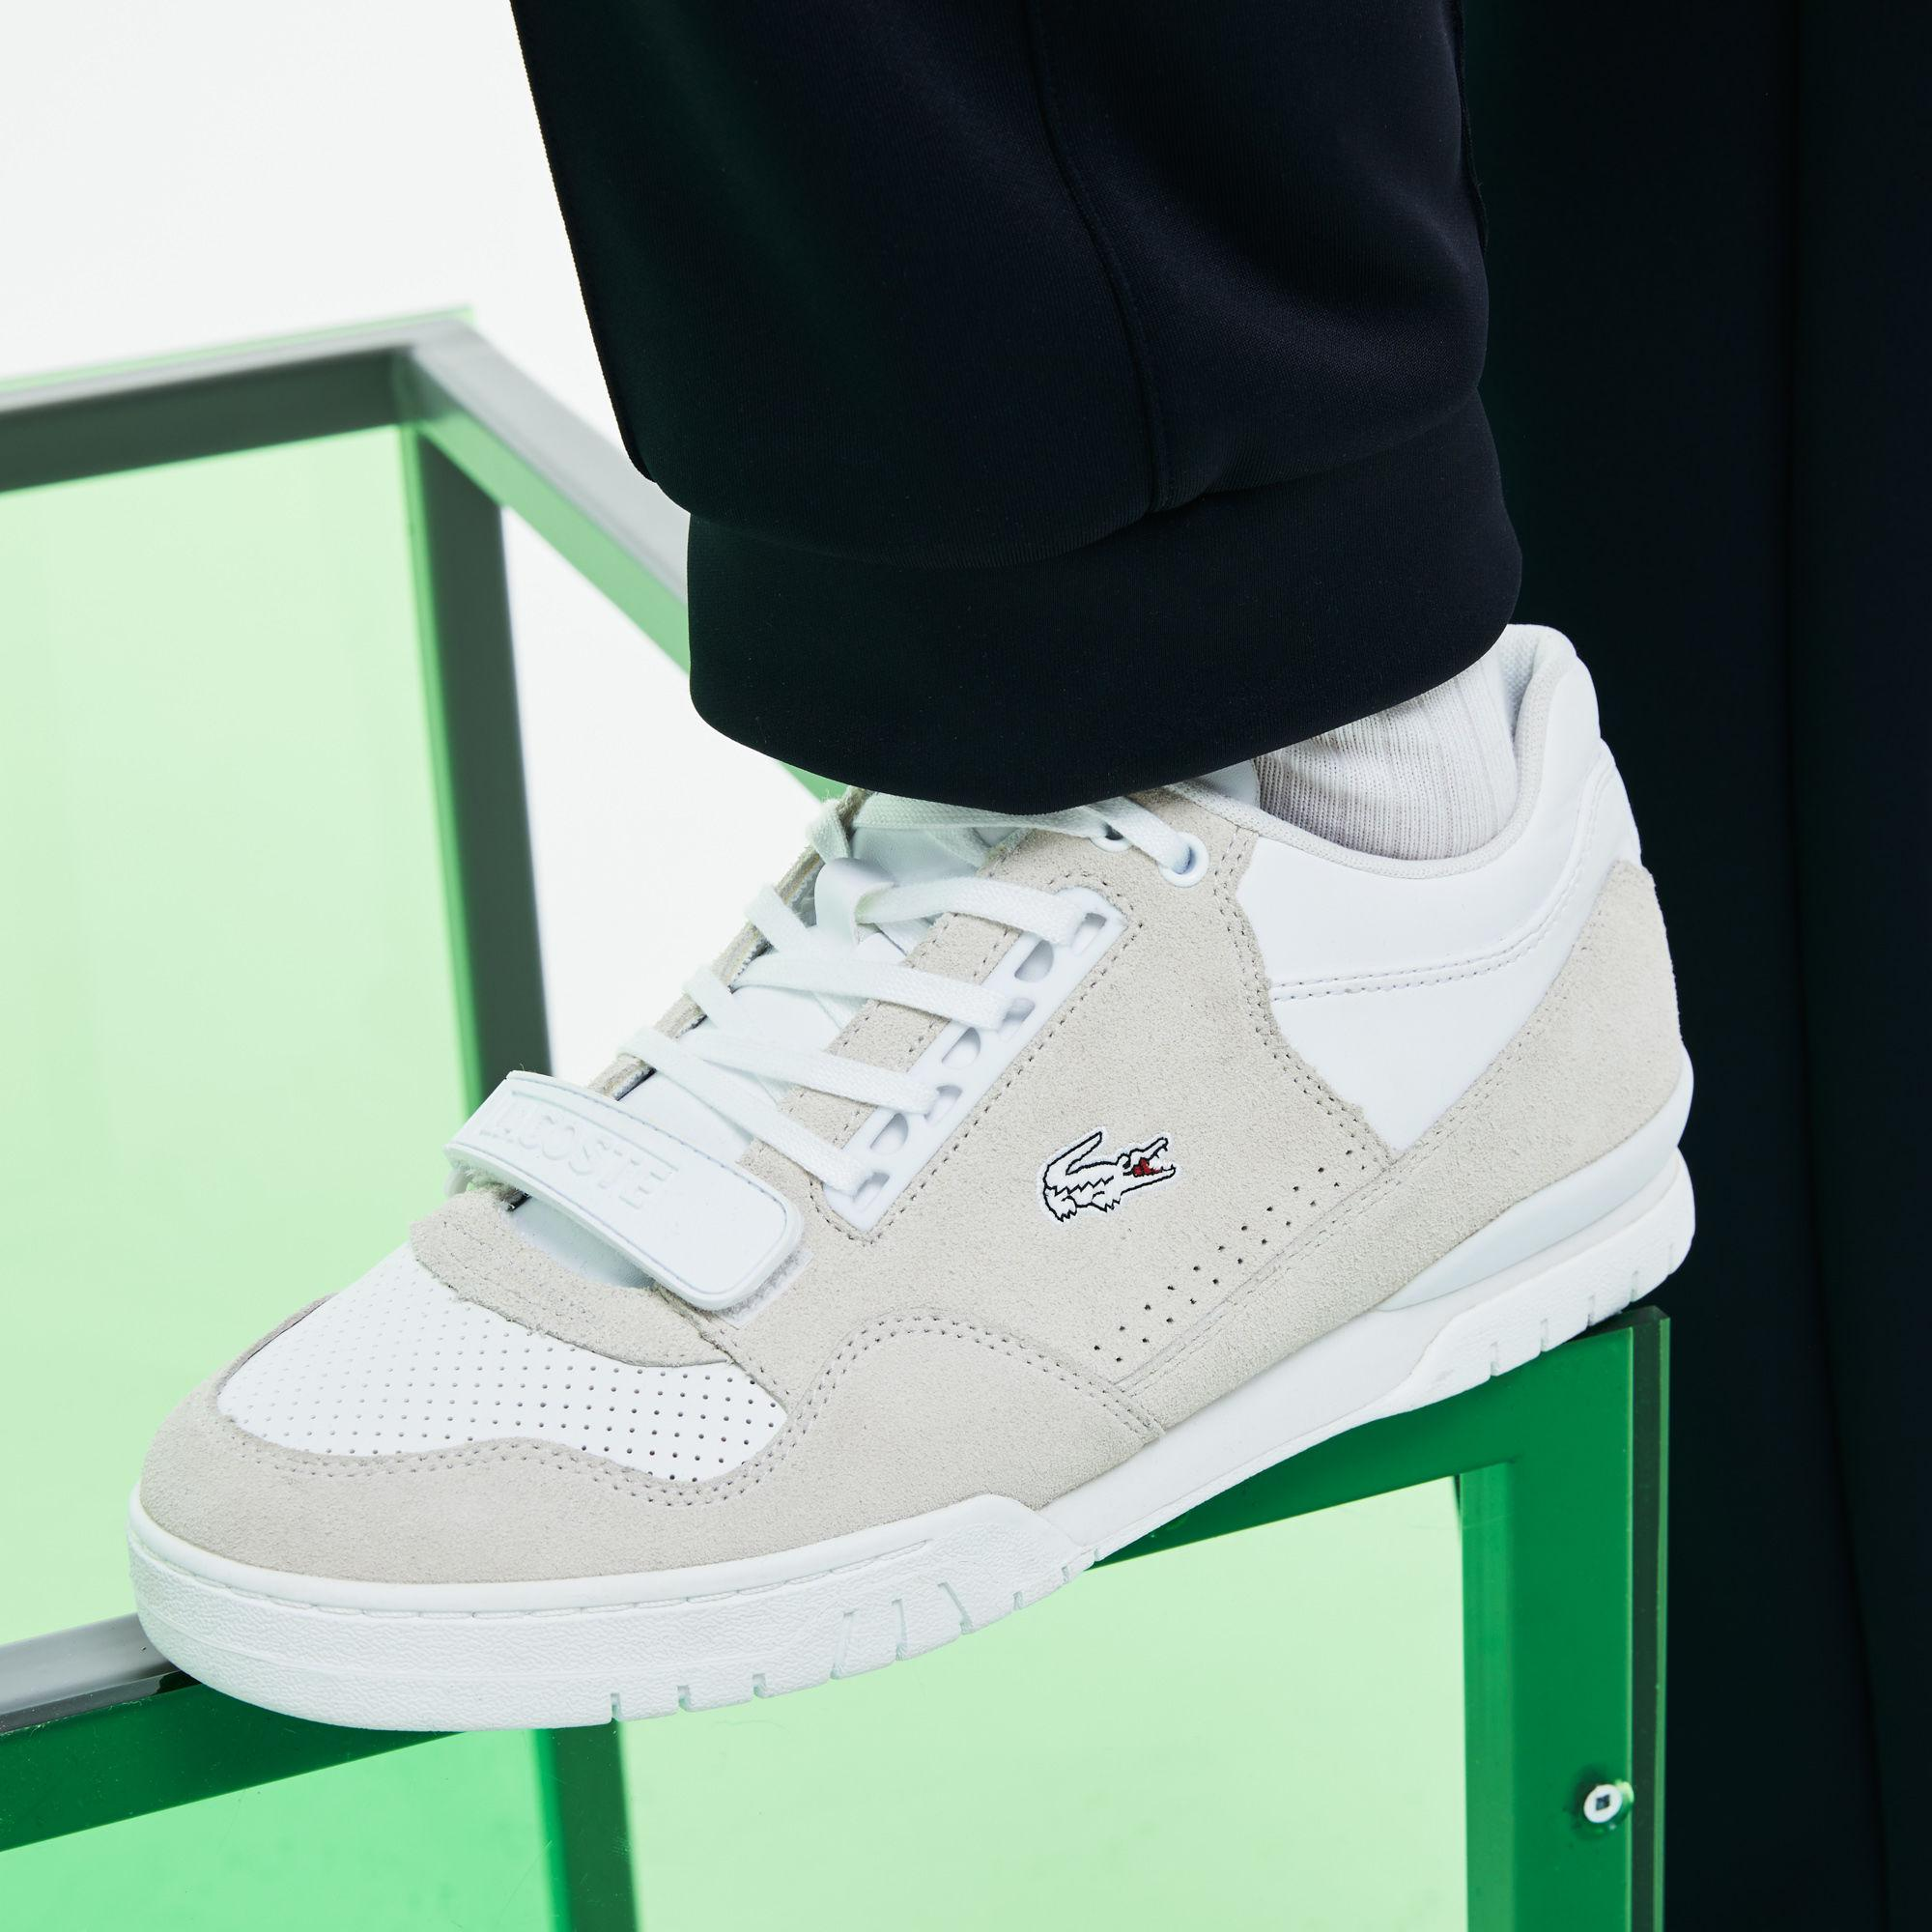 3ad062480 Lyst - Lacoste Fashion Show Missouri Leather Sneakers in White for Men